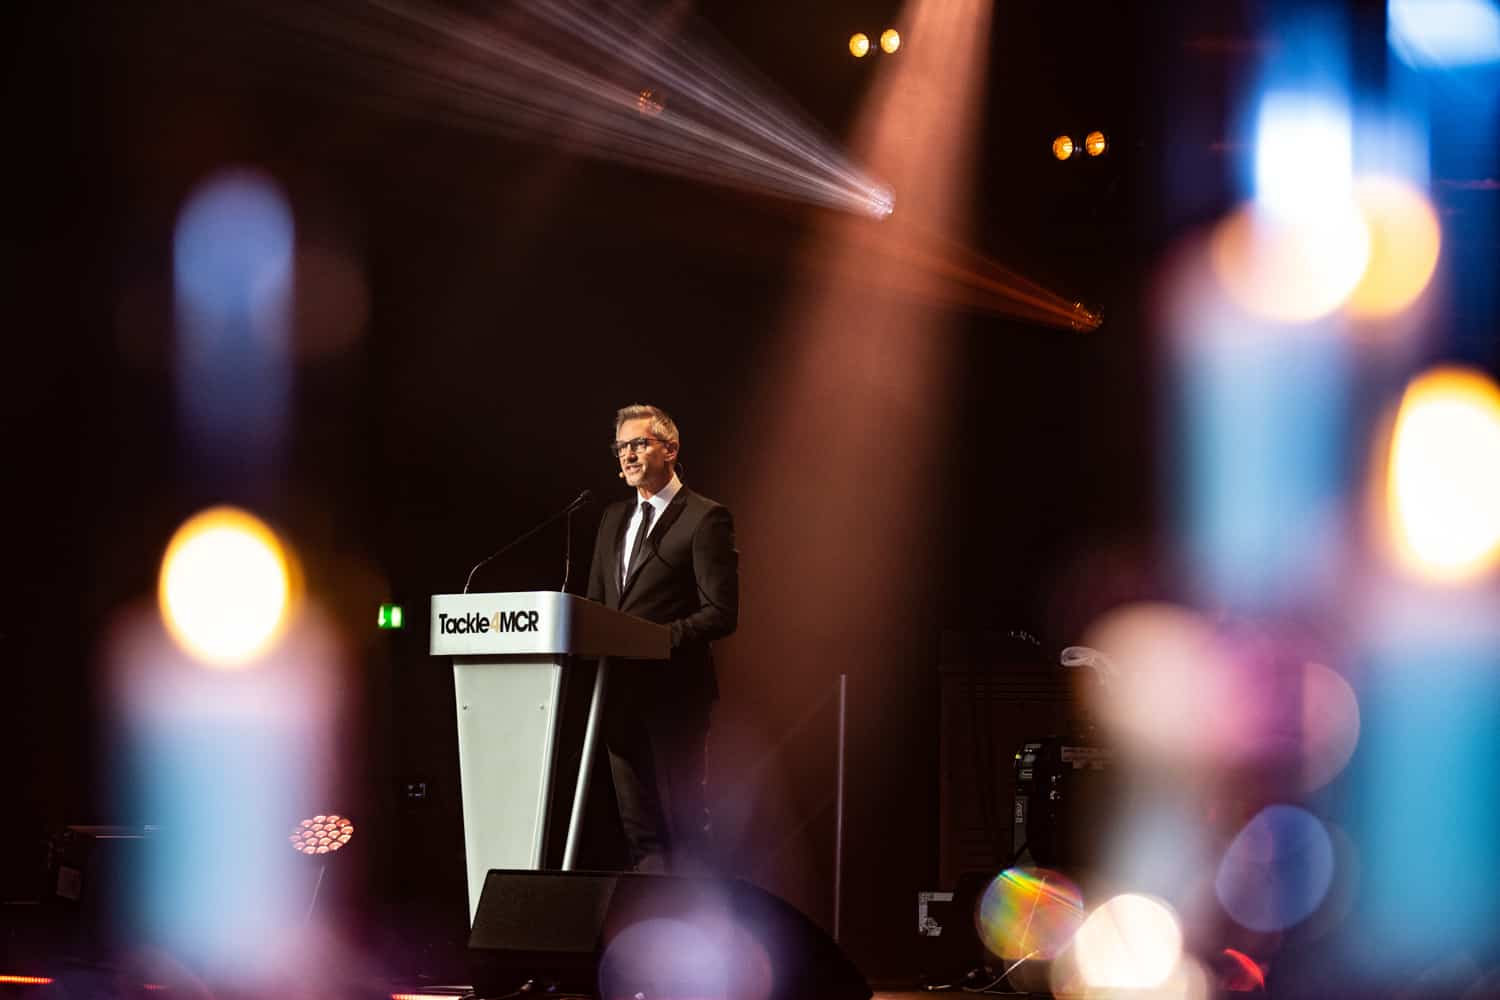 Corporate and conference photographer based in manchester this is gary linkaer presenting at the tackle for manchester awards in 2019